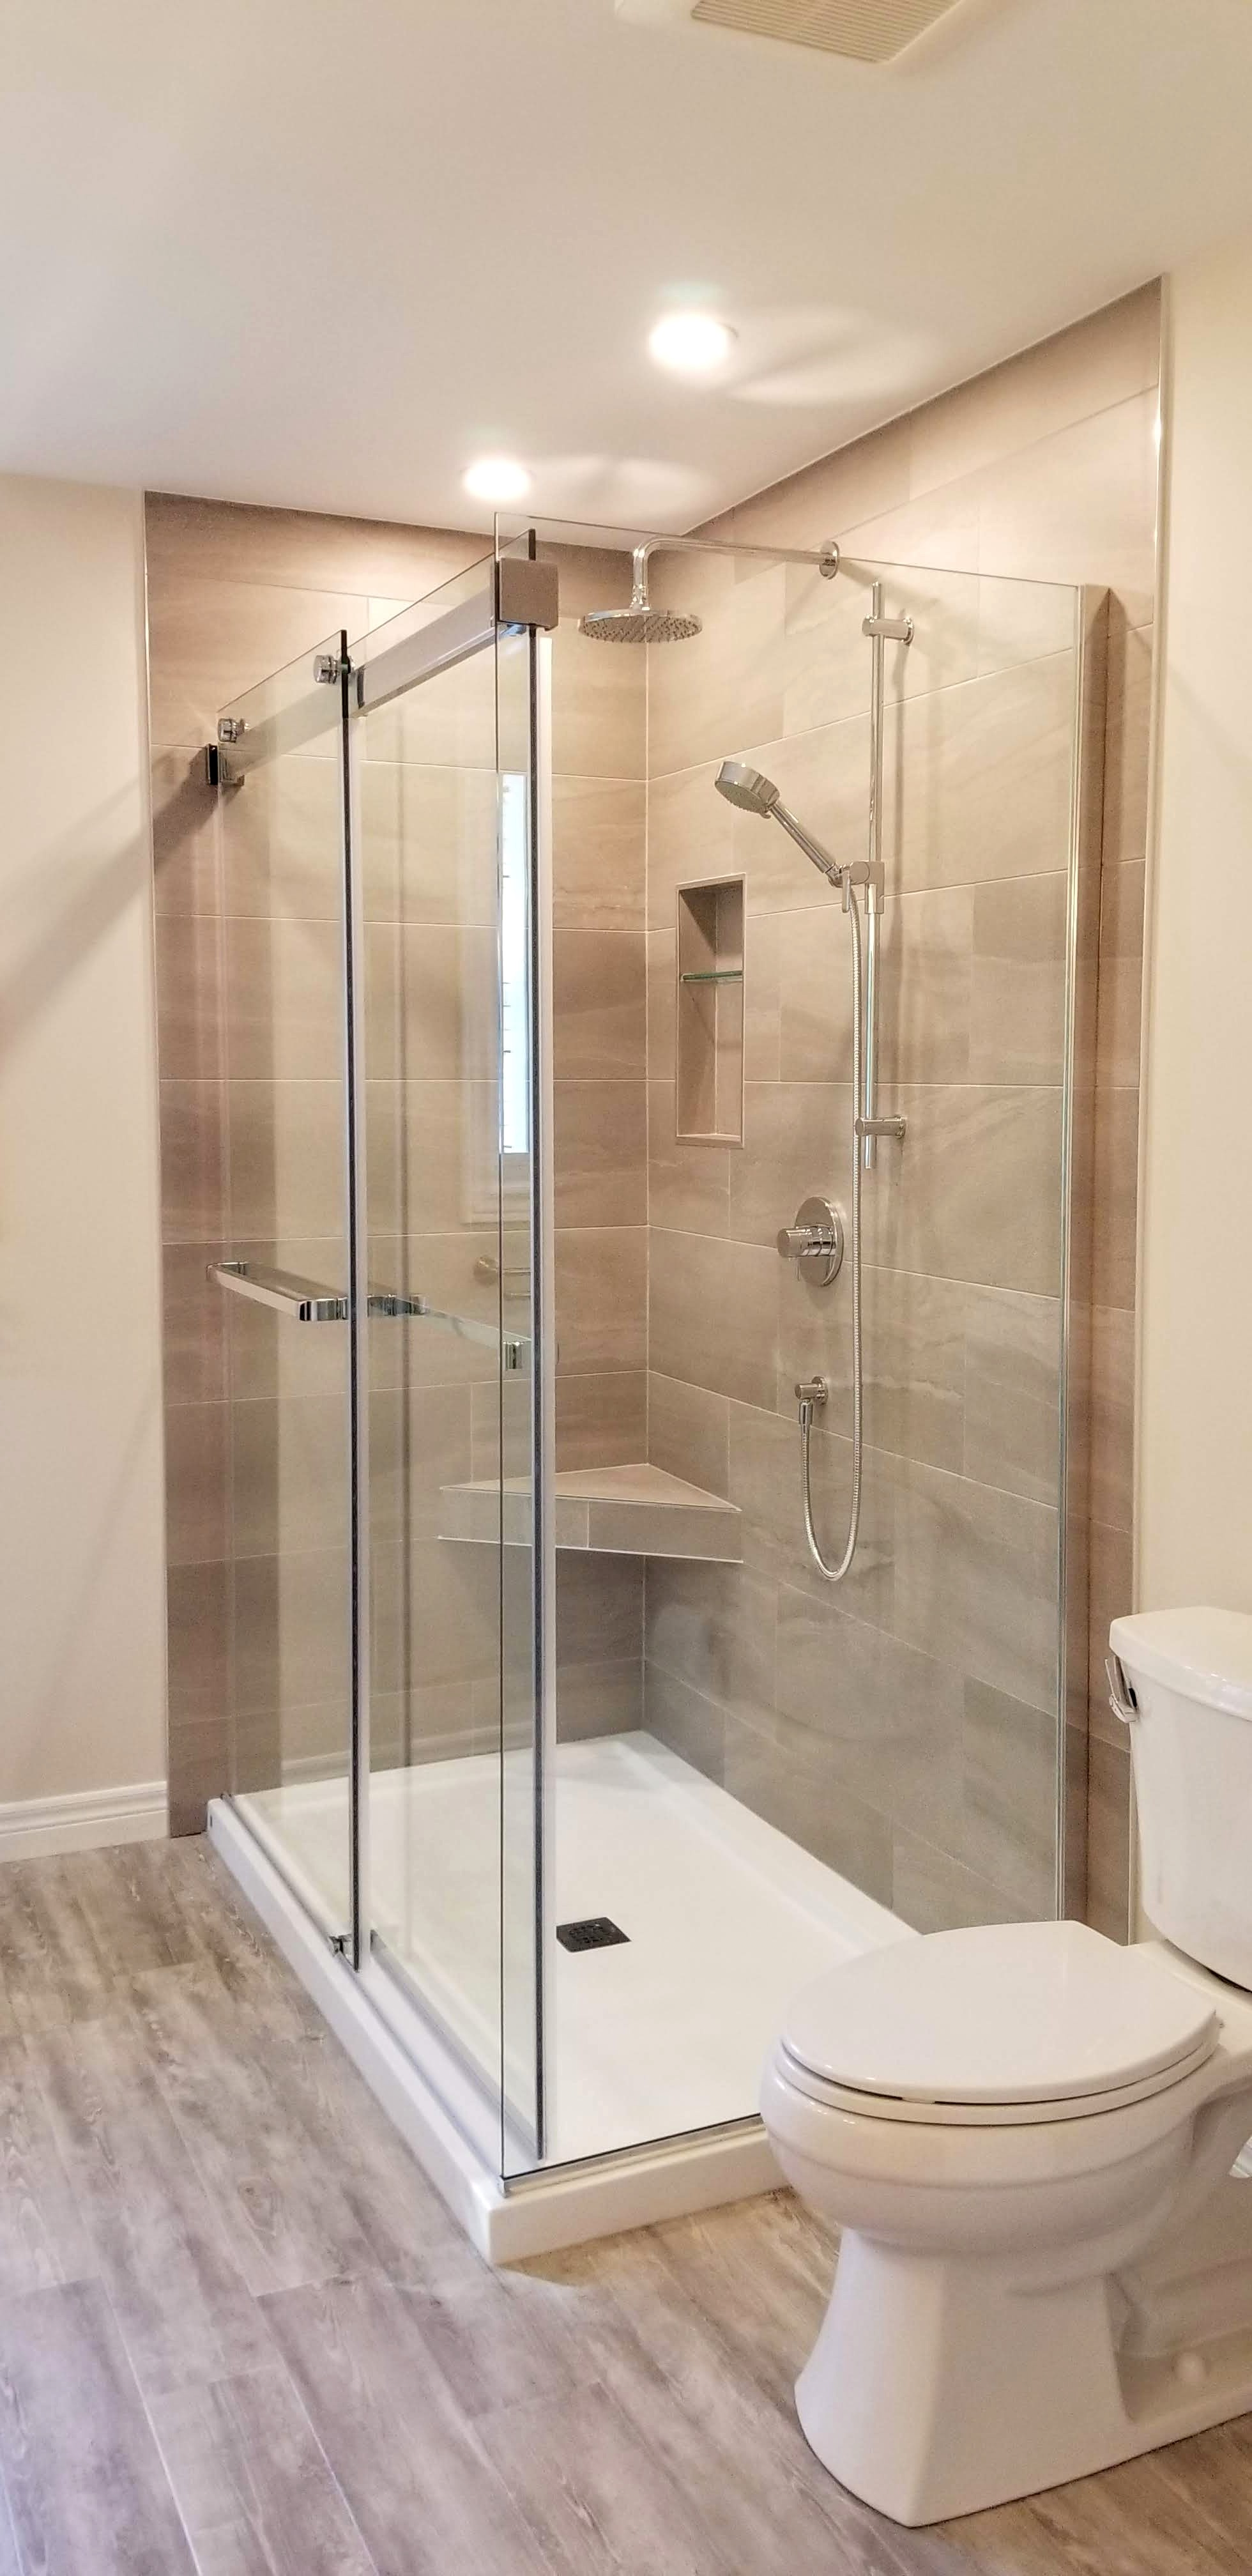 Tiled shower enclosed by glass door and panels by Germano Creative Interior Contracting Ltd.